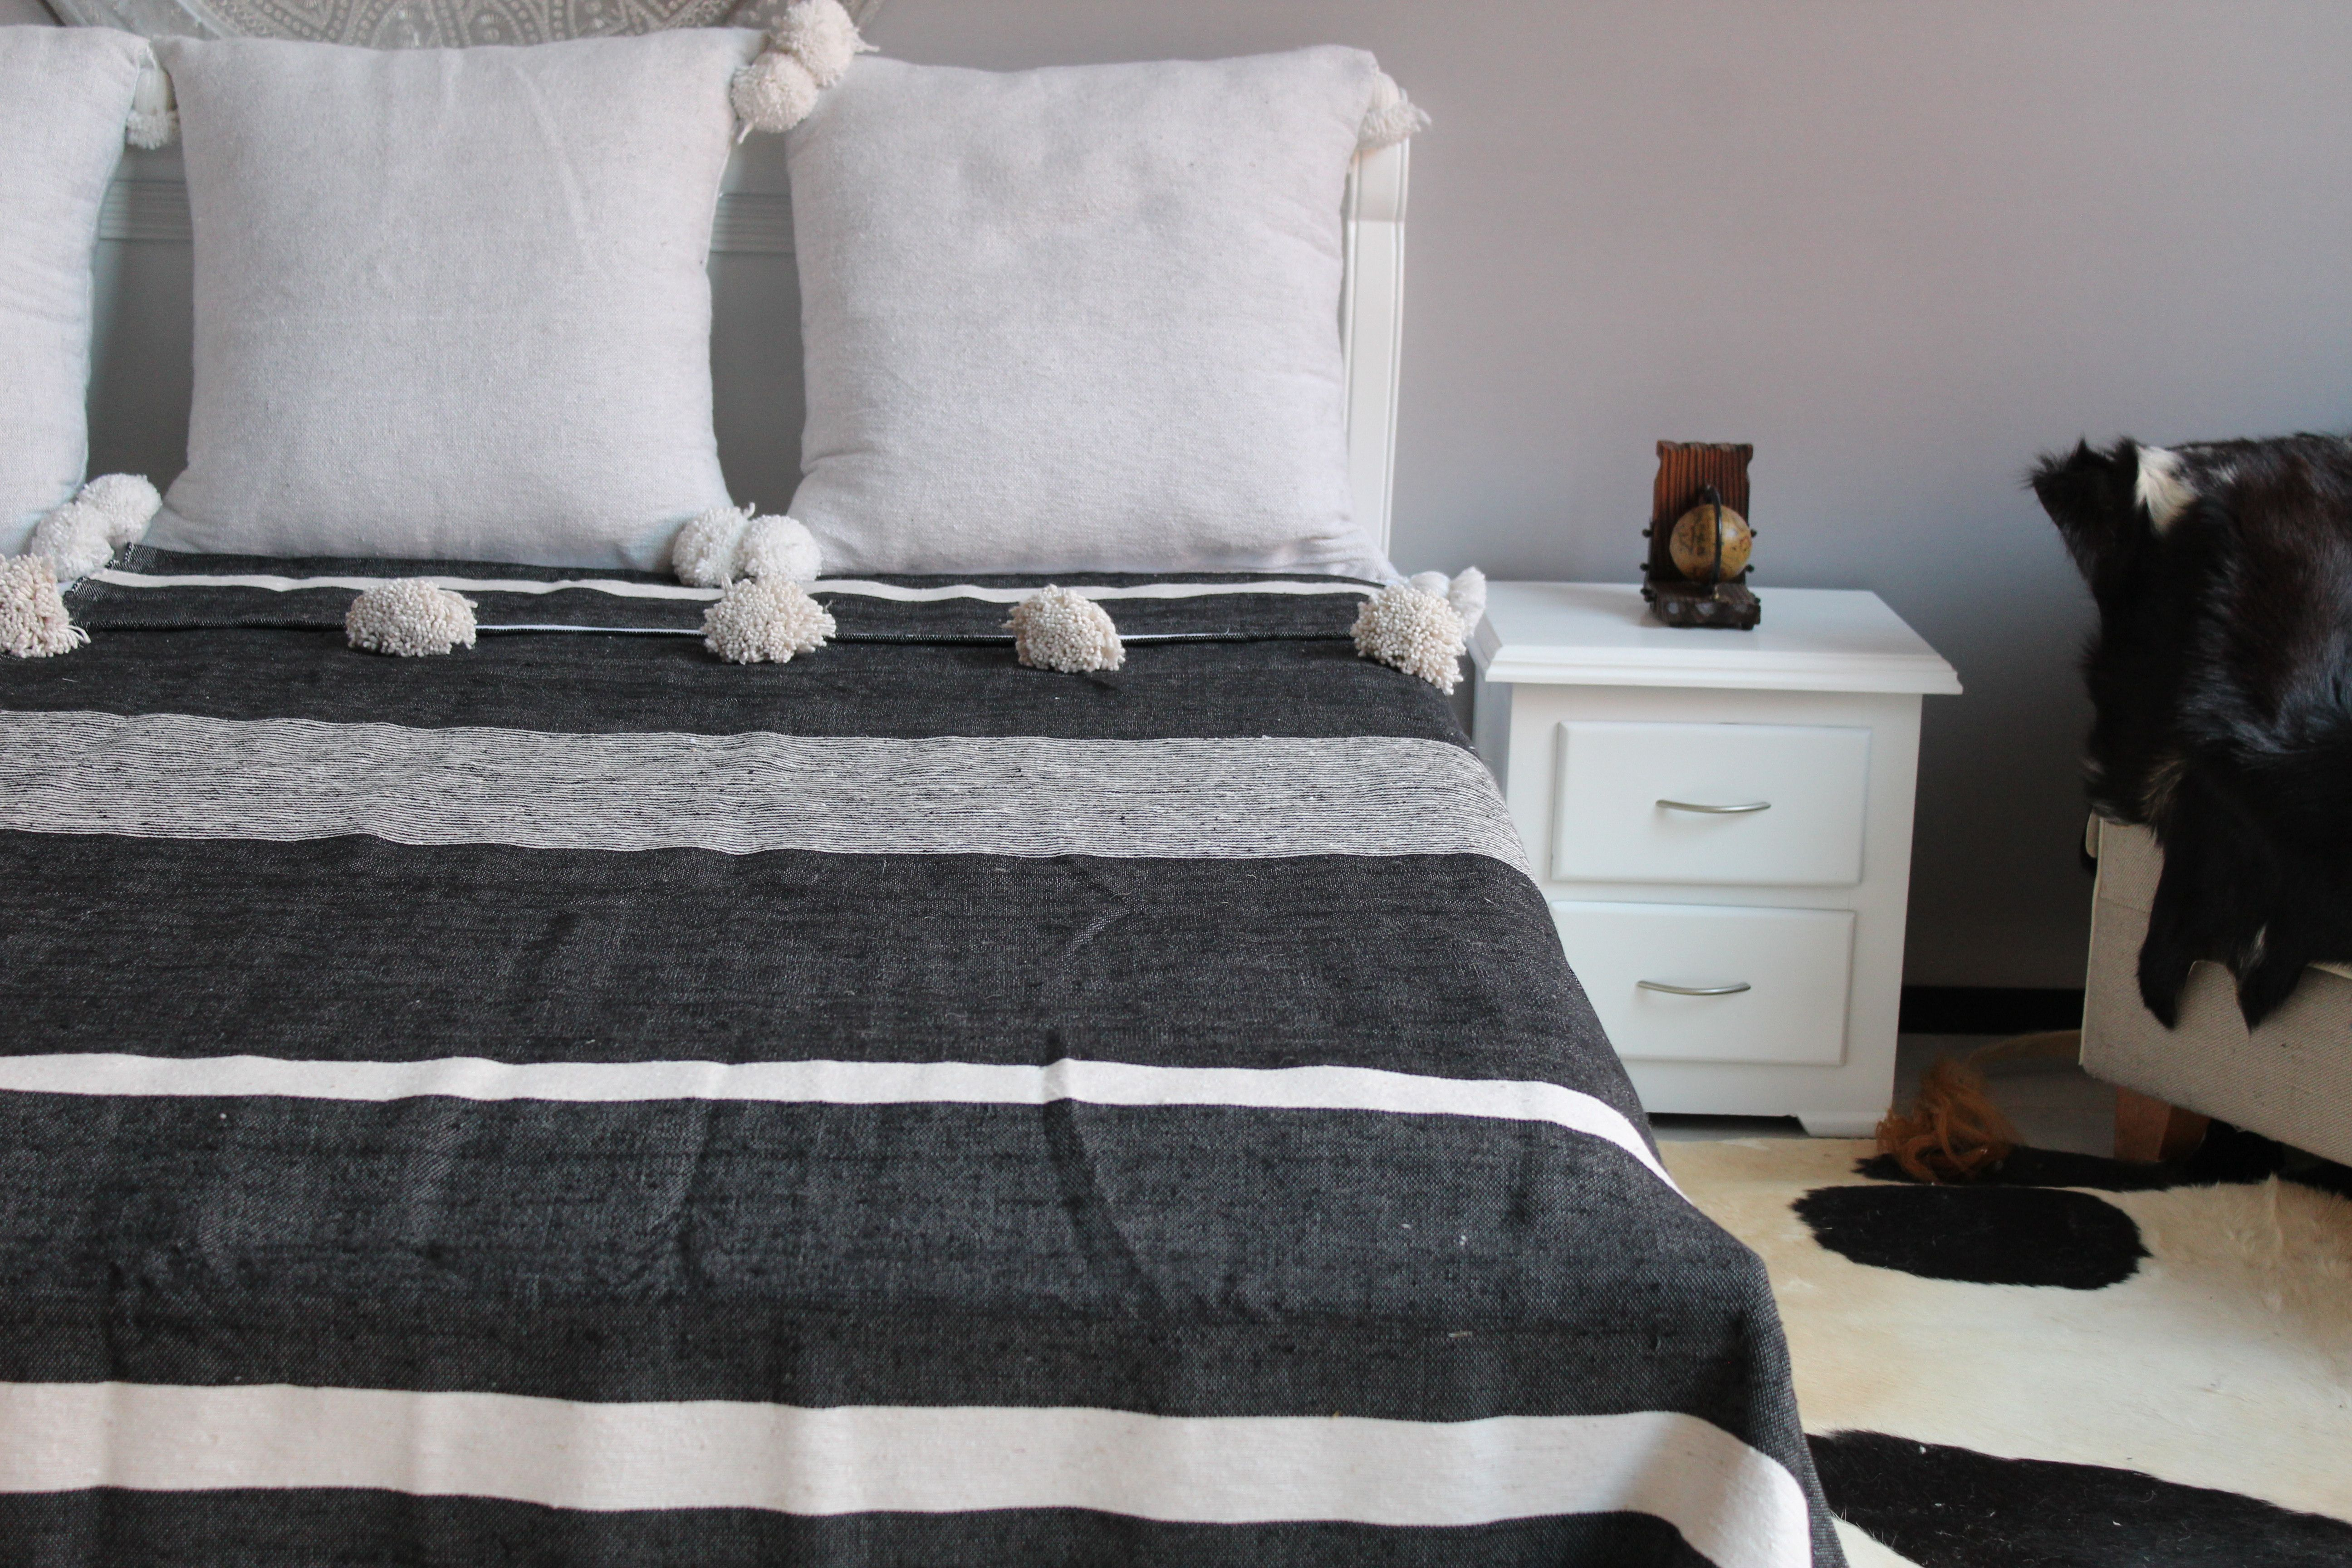 Duvet Cover Blanket made from Hand Woven Cotton Moroccan White Pompom Throw Blanket with Tassel Sofa Couch Throw Bed End Throw Blanket